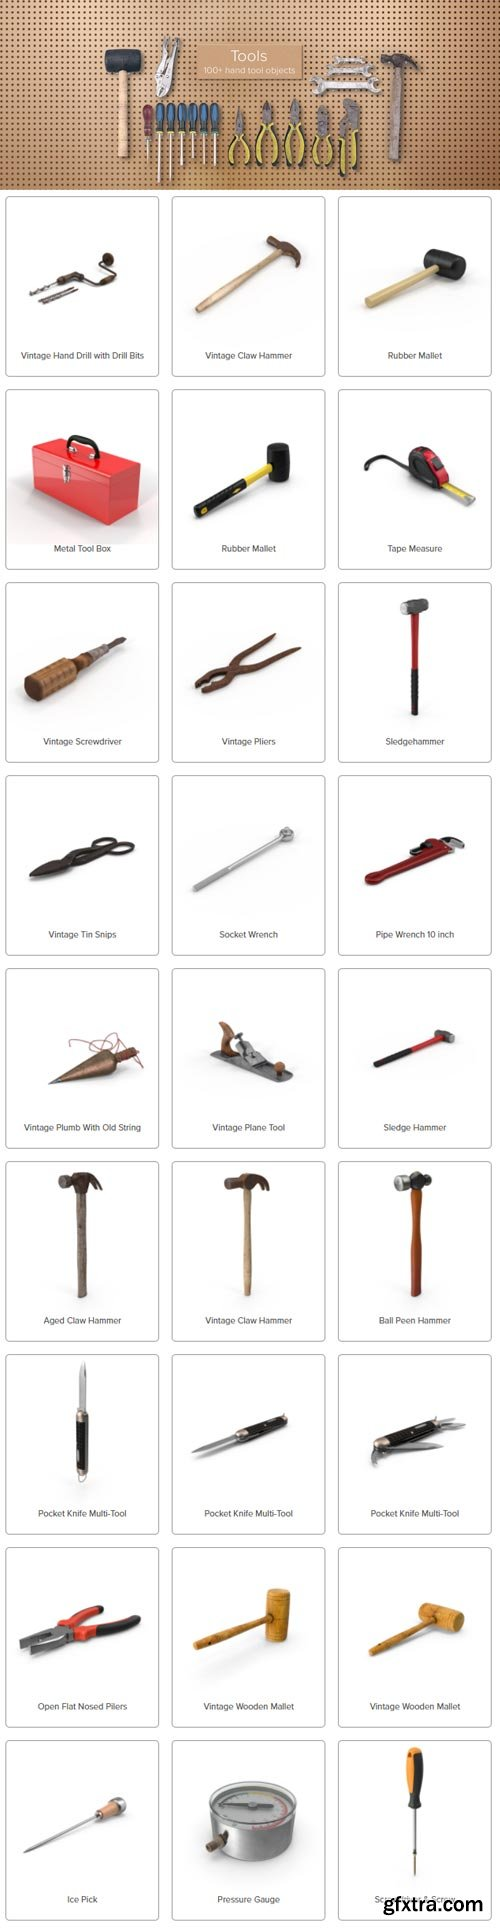 PixelSquid - Hand Tools Collection